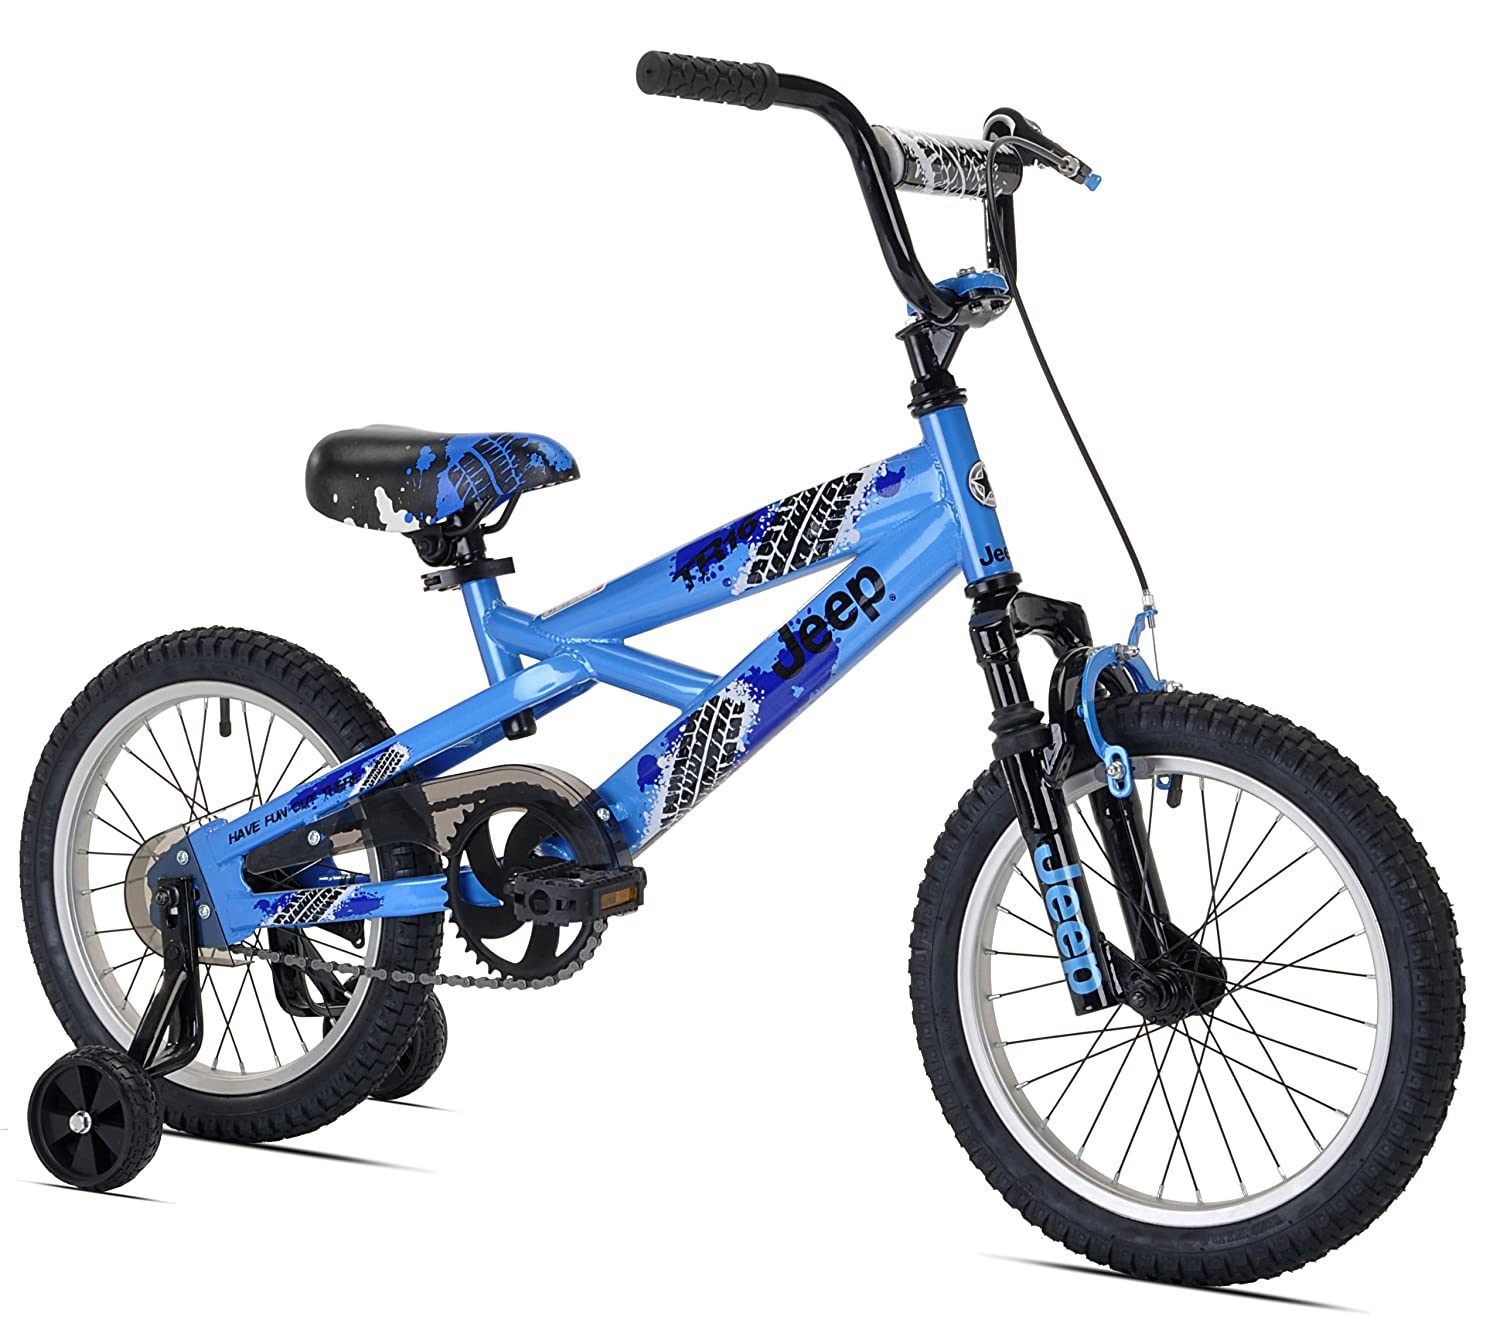 Bikes 16 Inch Boy Jeep Boy s Bike Inch